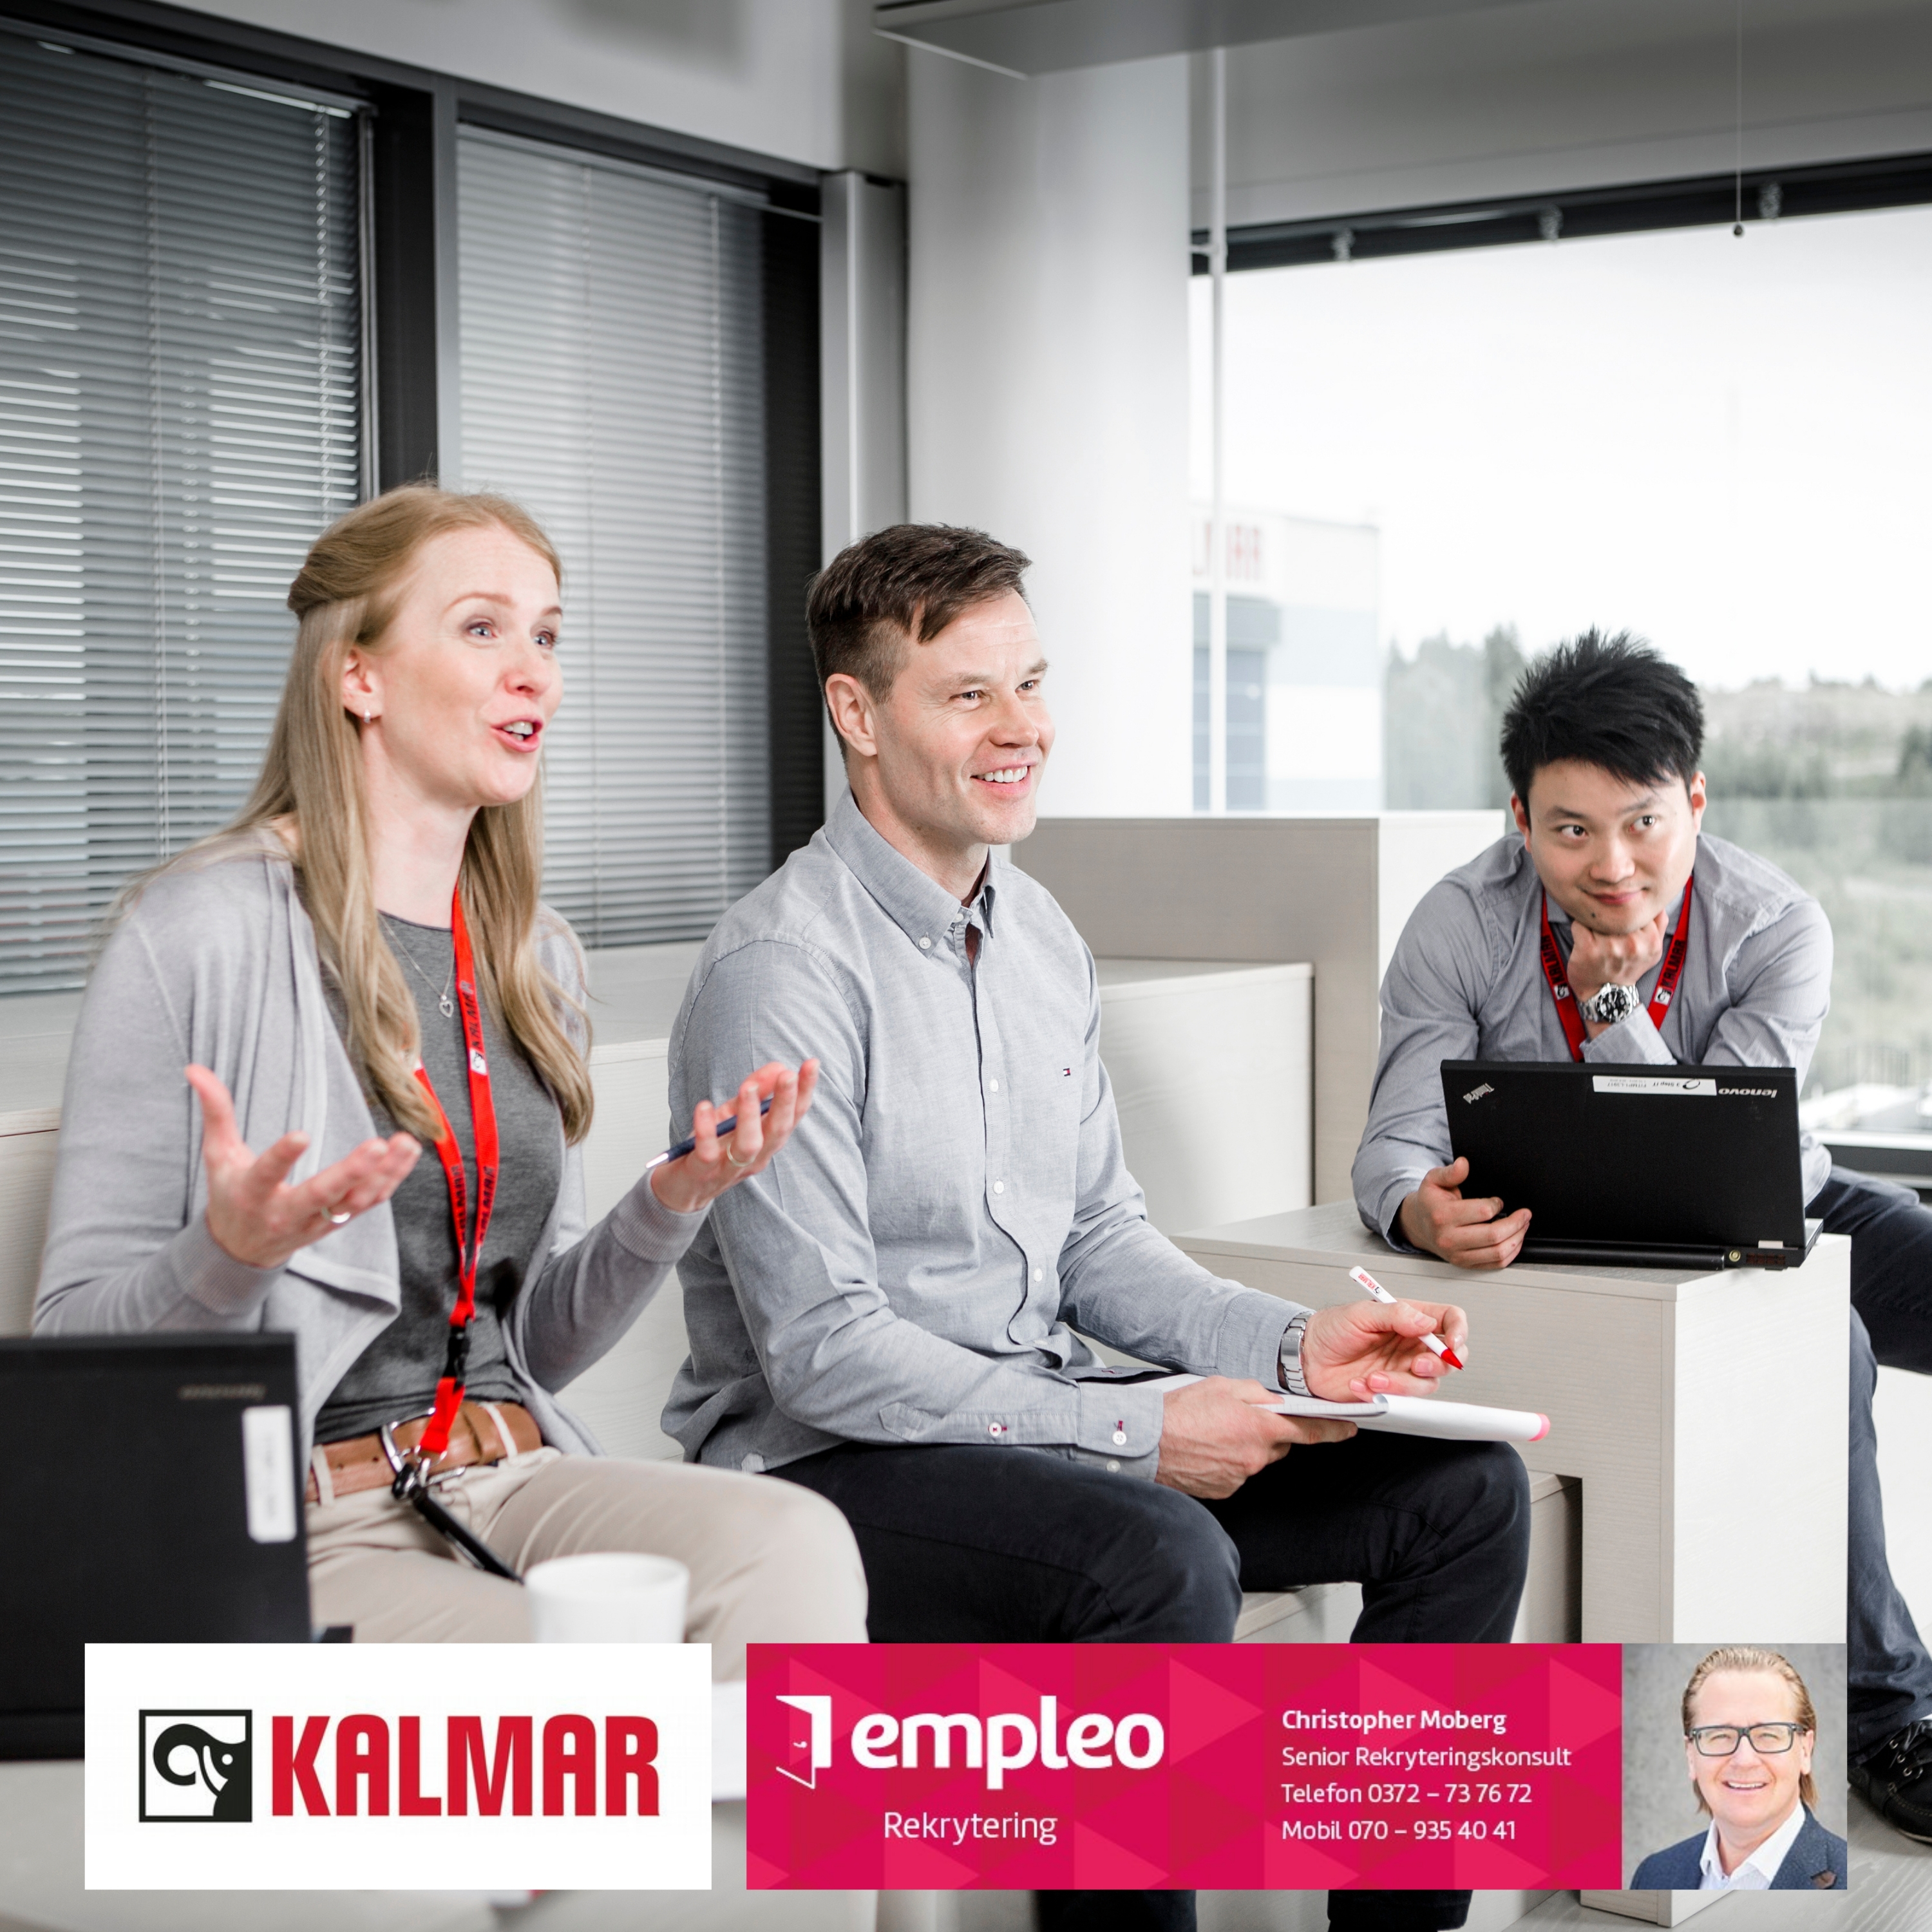 Area Sales Manager Kalmar Spare Parts Business.